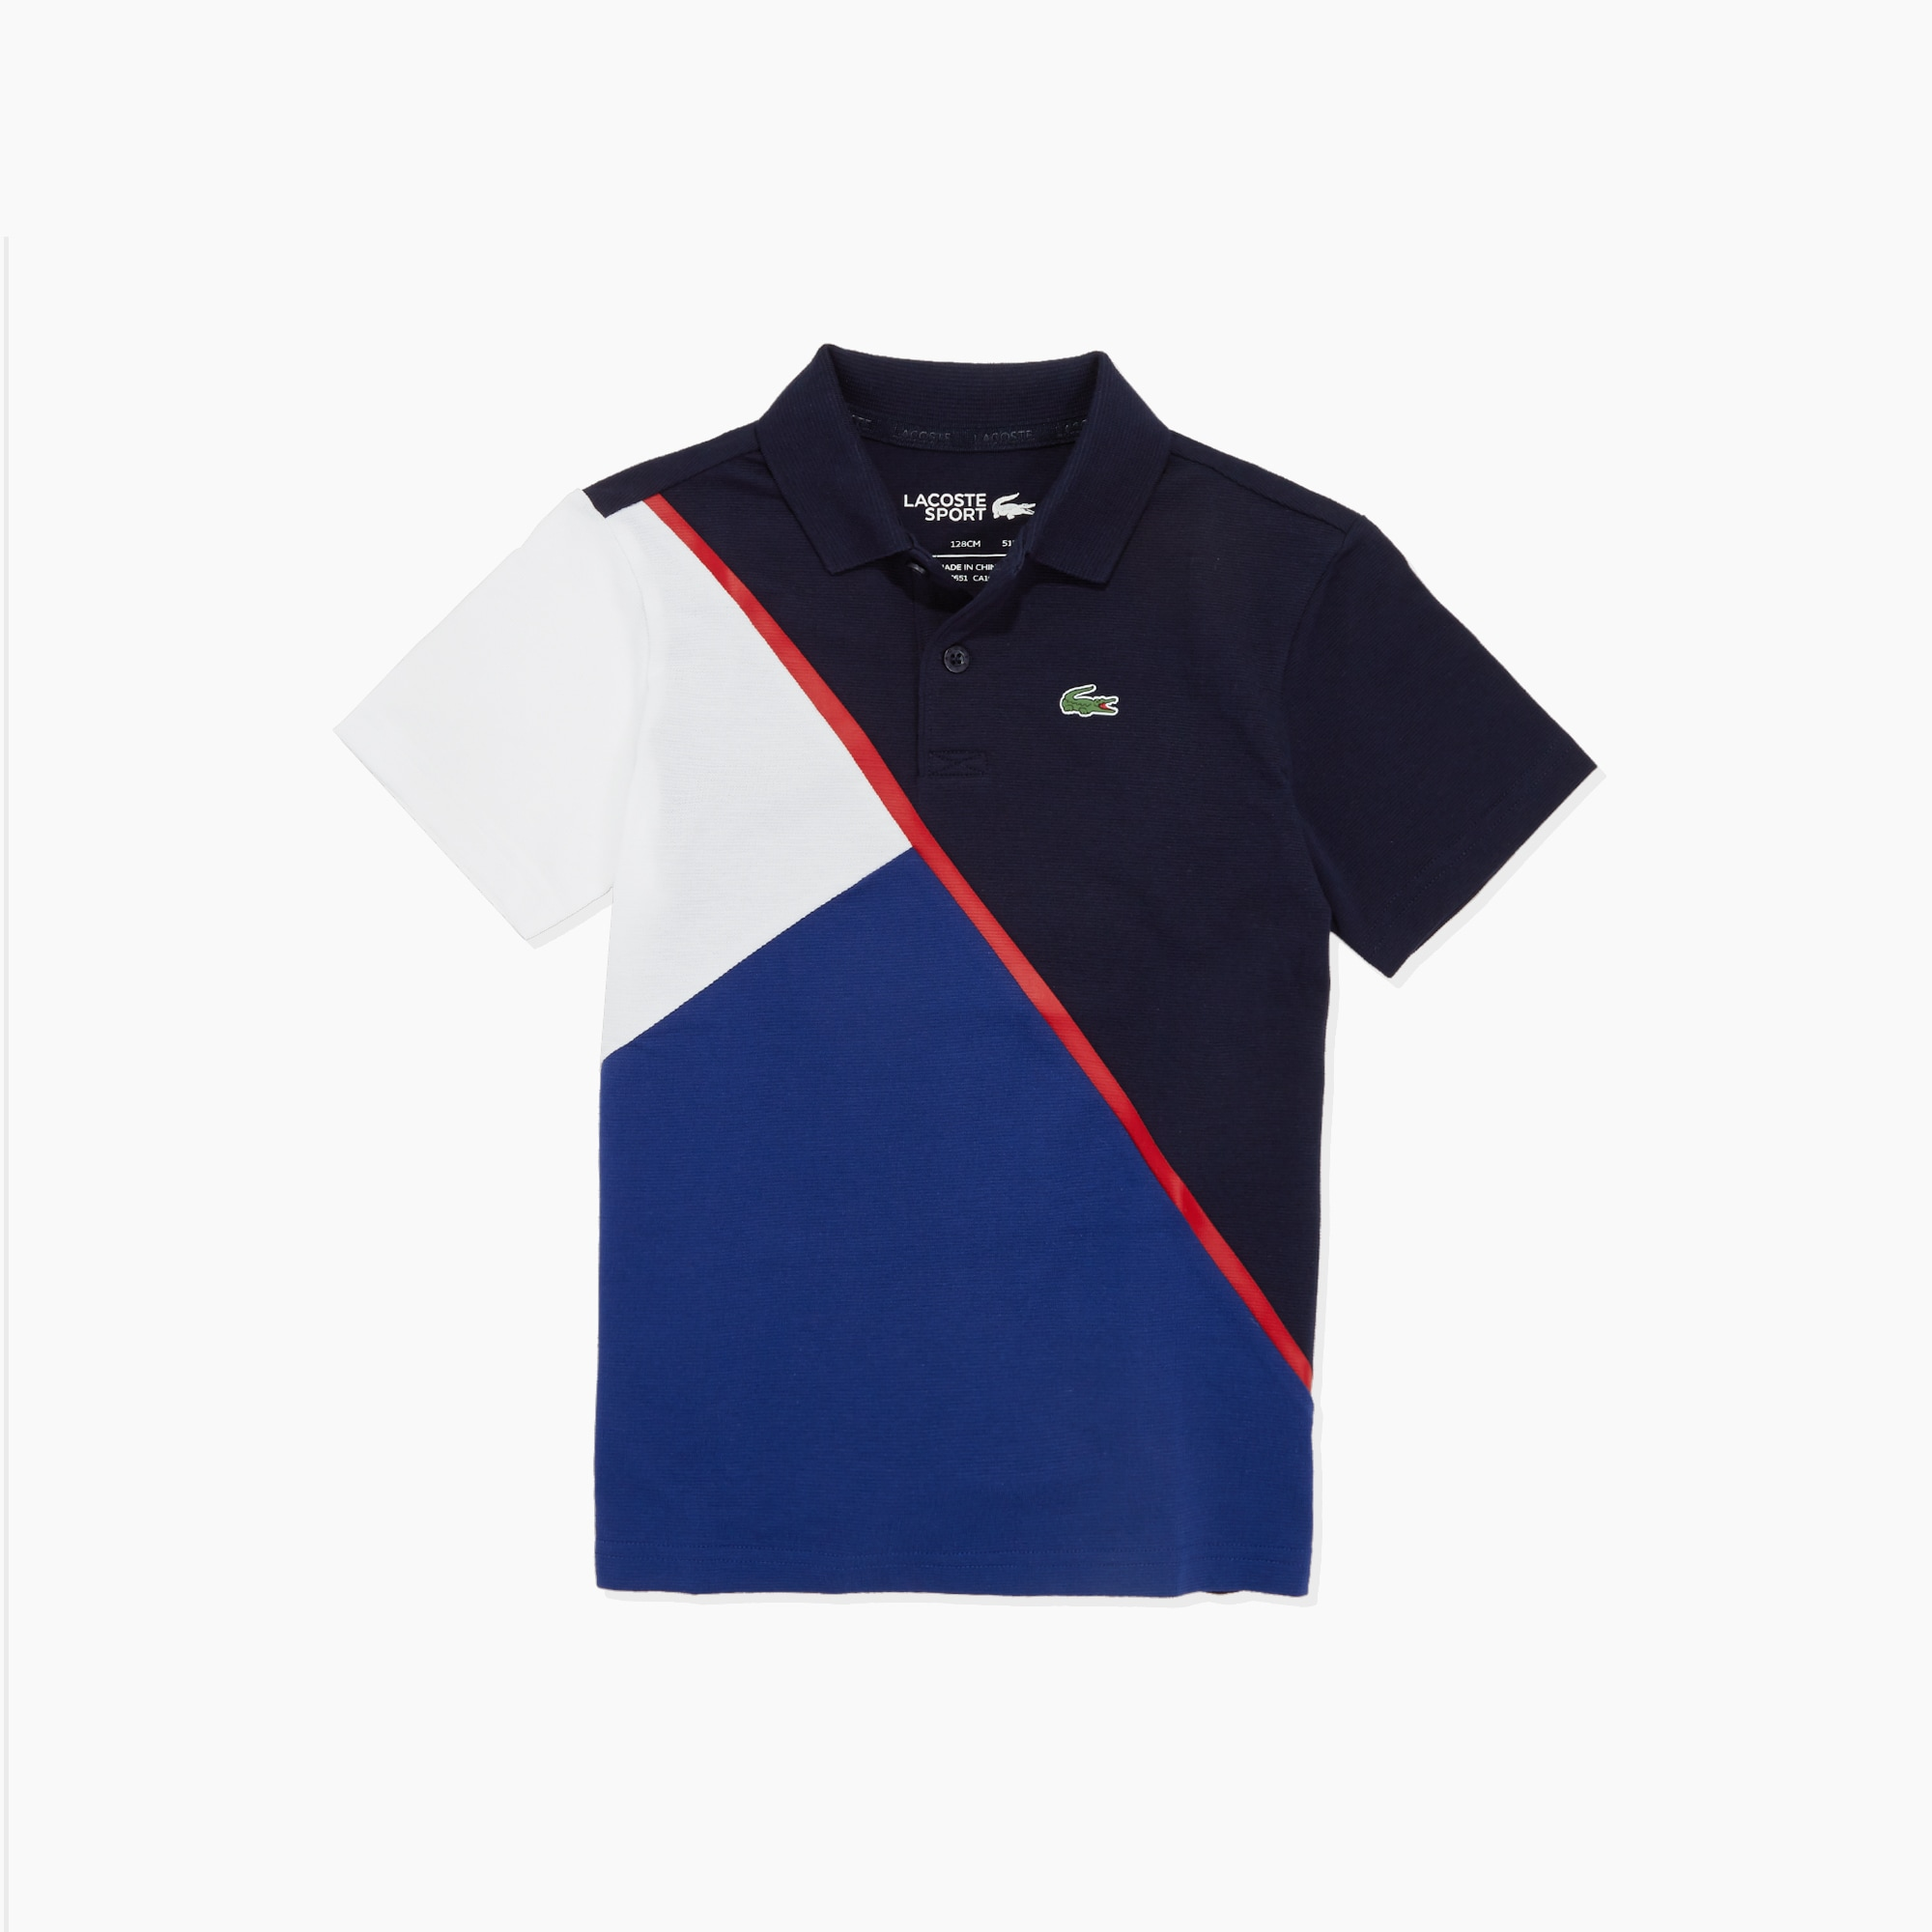 cc60a619 Boy's Clothing | Kid's Clothing | LACOSTE